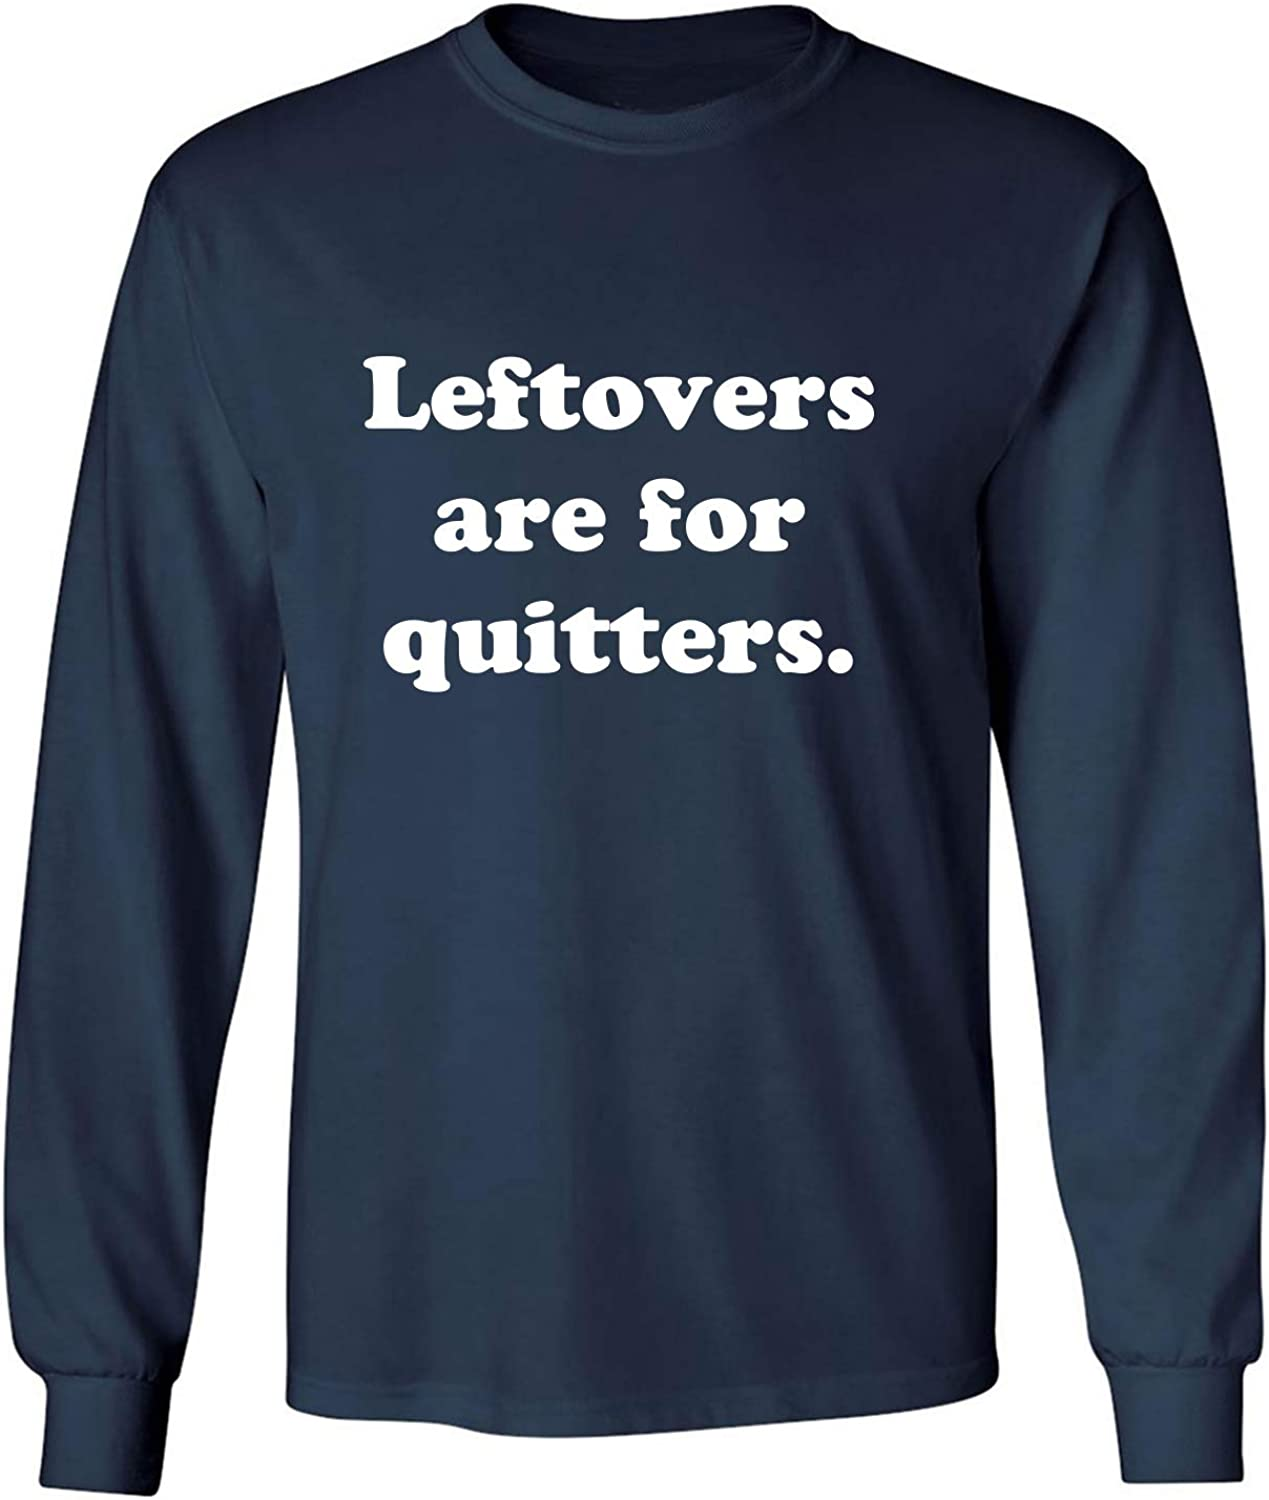 Leftovers are for Quitters Adult Long Sleeve T-Shirt in Navy - XXXXX-Large